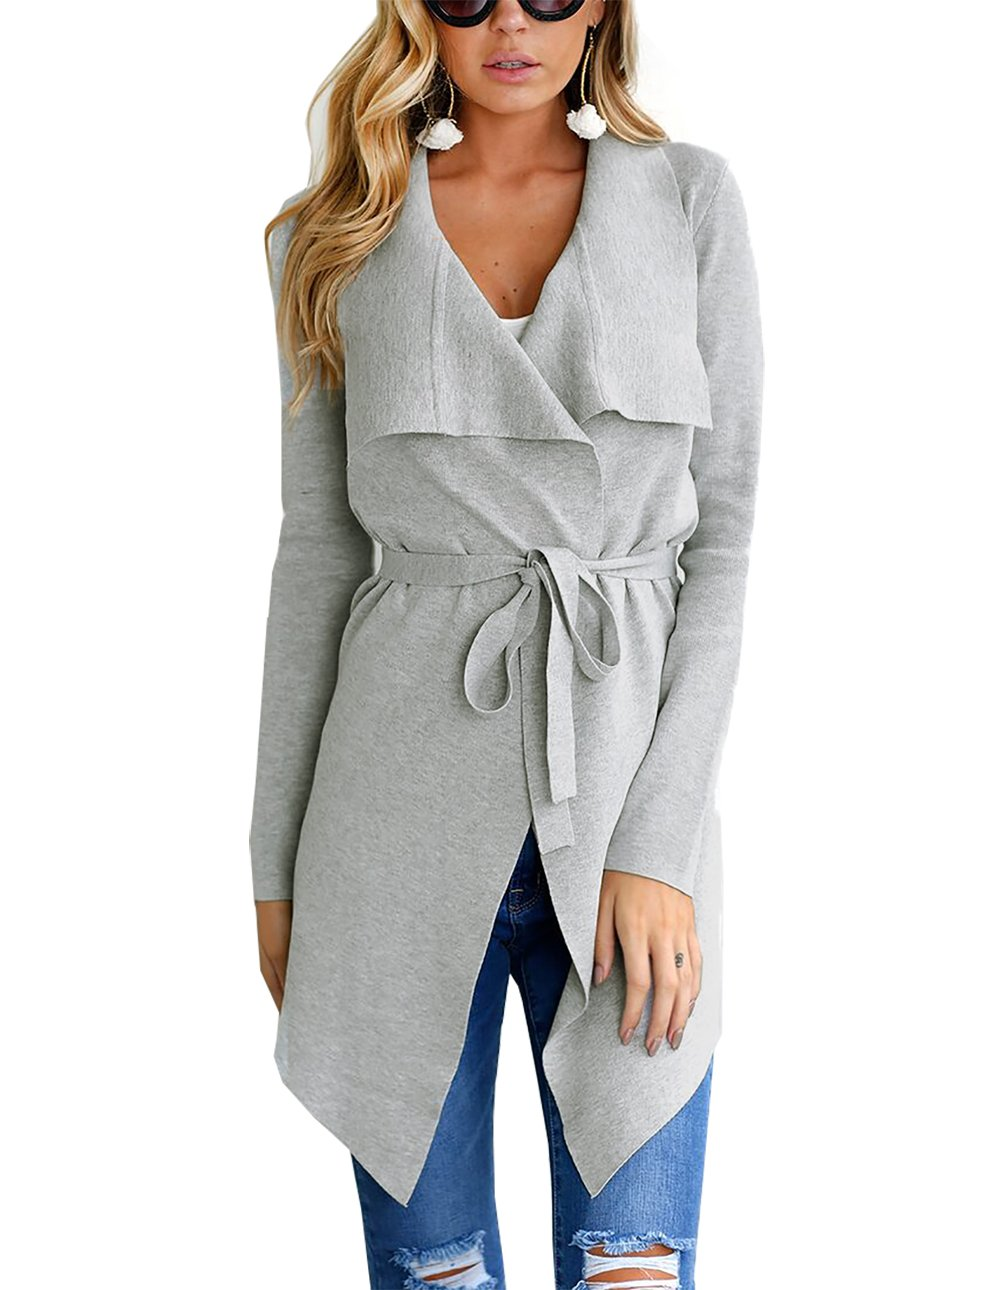 PRETTYGARDEN Women's Open Front Long Sleeve Raw Cut Hem Waterfall Collar Irregular Trench Coat Cardigan with Belt (Grey, Medium)